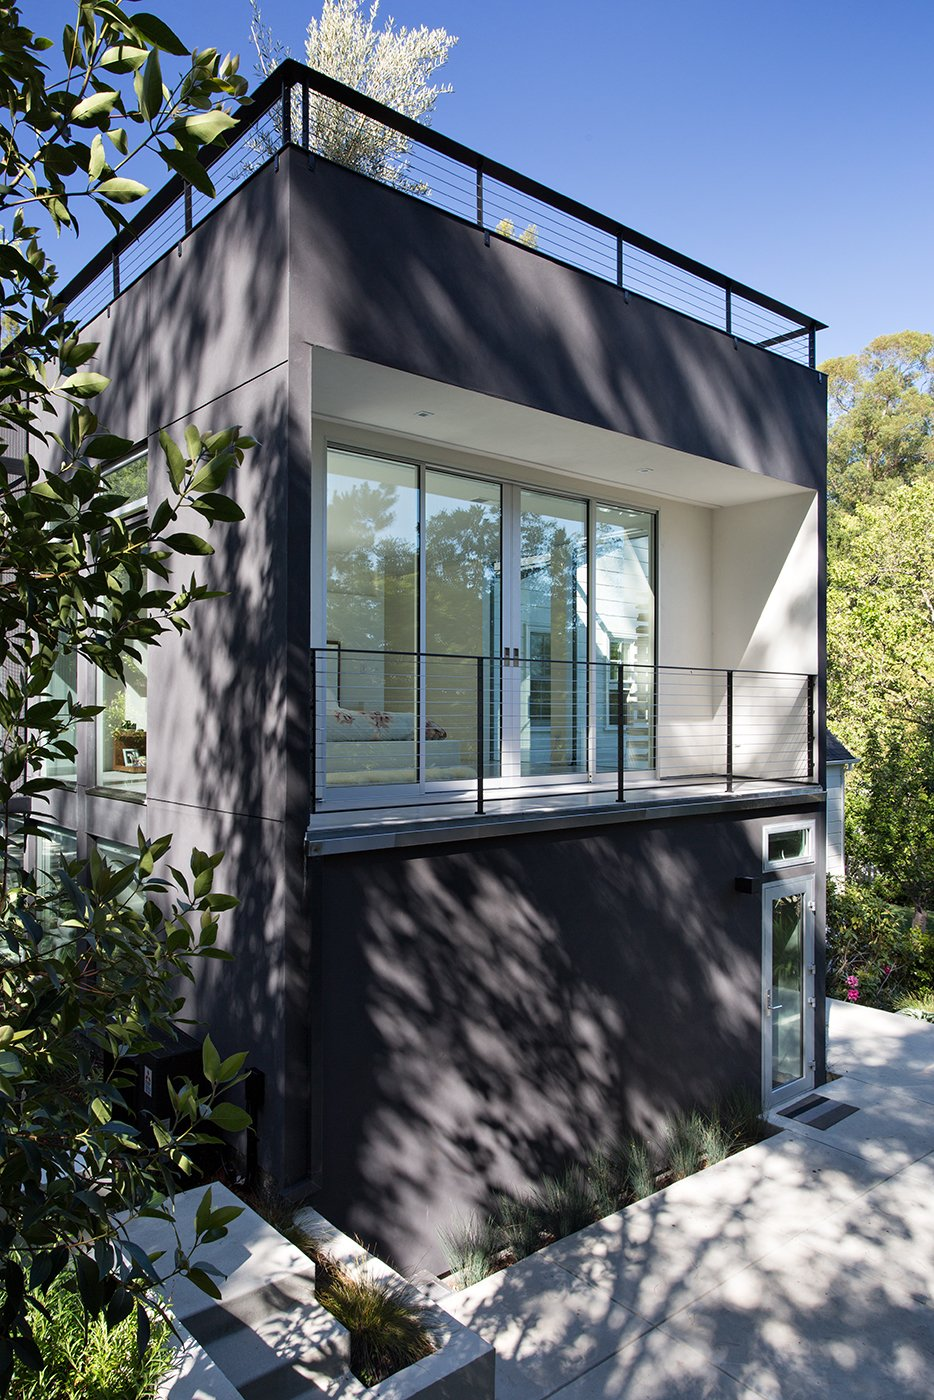 Exterior, Flat RoofLine, and House Building Type Minimal Modern Addition  Sebastian and Tanja DiGrande's quest for natural light and open, modern design led them to Klopf Architecture in San Francisco. Working hand-in-hand with homeowner/designer Tanja DiGrande, Klopf collaborated on a modern addition to the rear of a traditional-style home. The idea was to depart from the original style completely to draw a distinction between the original house and any later additions, as well as observe a very minimal, clean, gallery-like modern style against which changing daylight, art, furniture, and of course the people provide the color and motion.  With its dark gray stuccoed walls, dark steel railing, and floor-to-ceiling windows, the exterior of the addition is at the same time an open, modern box as well as a receding volume that acts almost as a backdrop for the house, receding visually out of respect for the original home. From the interior, windows bring in nature and views from all around the lush property. They also allow views of the original house. Up on the roof deck the views magnify. The owners use a boom and crank to bring up food and drinks when entertaining!  Inside, the simple clean-lined spaces showcase the couple's minimal, modern taste. The open bathroom epitomizes the clean, minimal style of the addition. On the exterior, steel elements bring a more industrial modern feeling to the addition from the rear.   Klopf Architecture